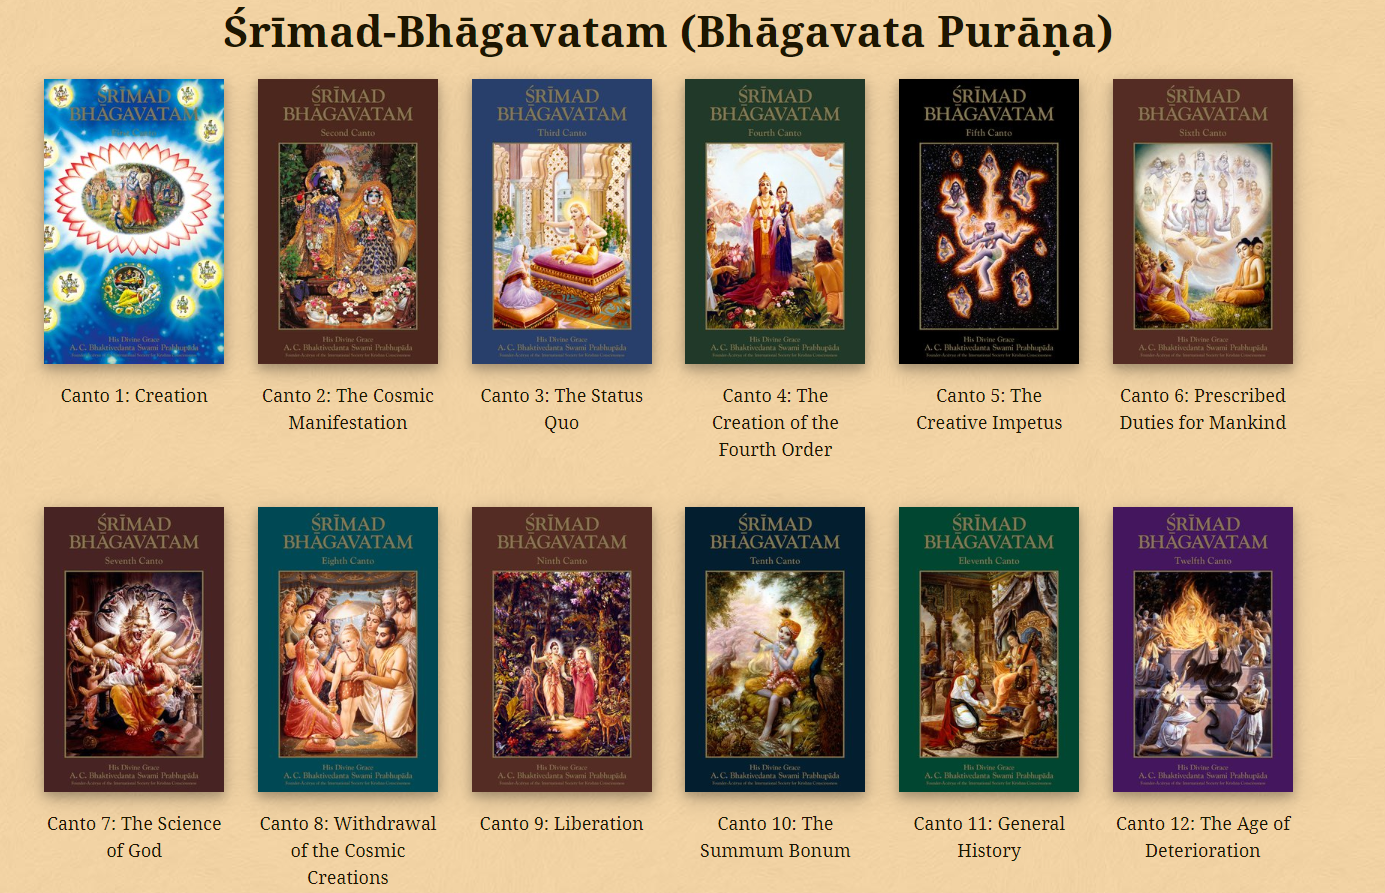 The Timeless Wisdom. Srimad-Bhagavatam, an epic… | by Niladri Bihari Nayak | Medium